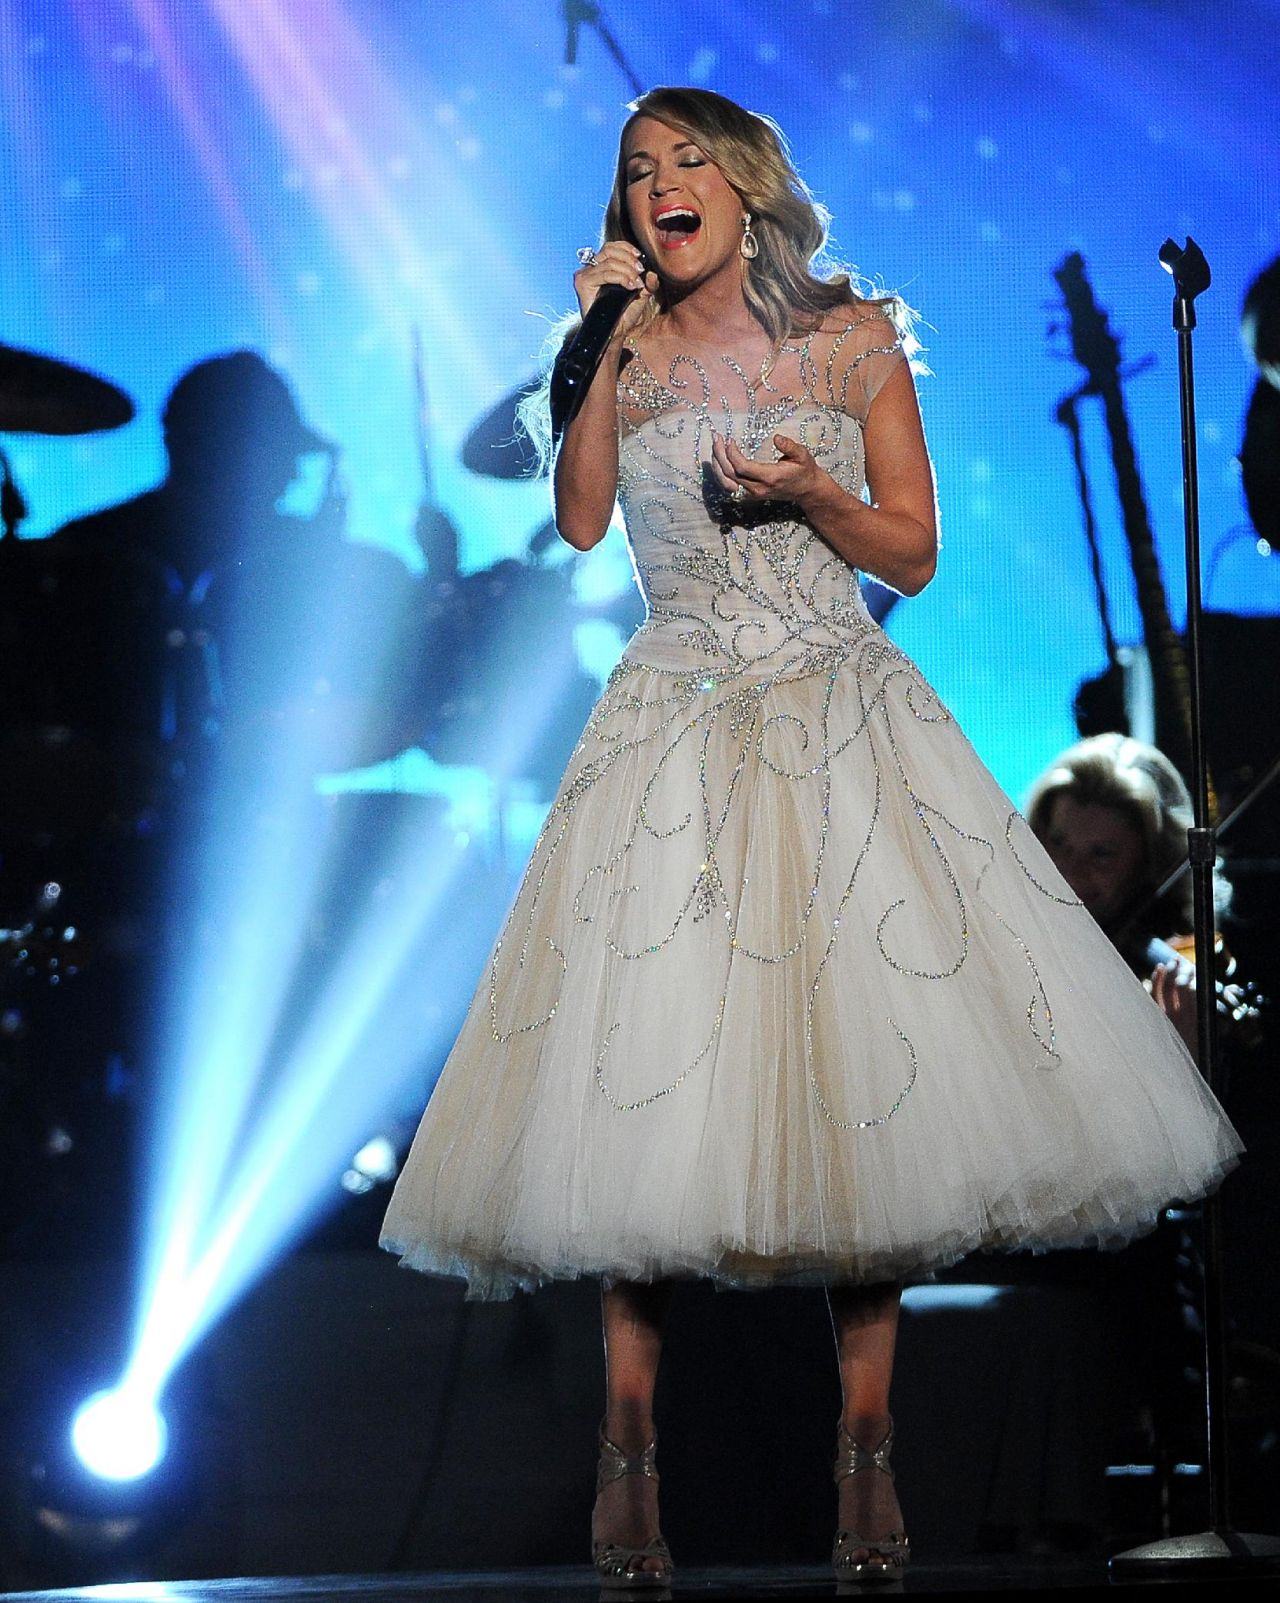 Carrie Underwood Performs at ACM Presents: An All-Star Salute To The Troops (2014)